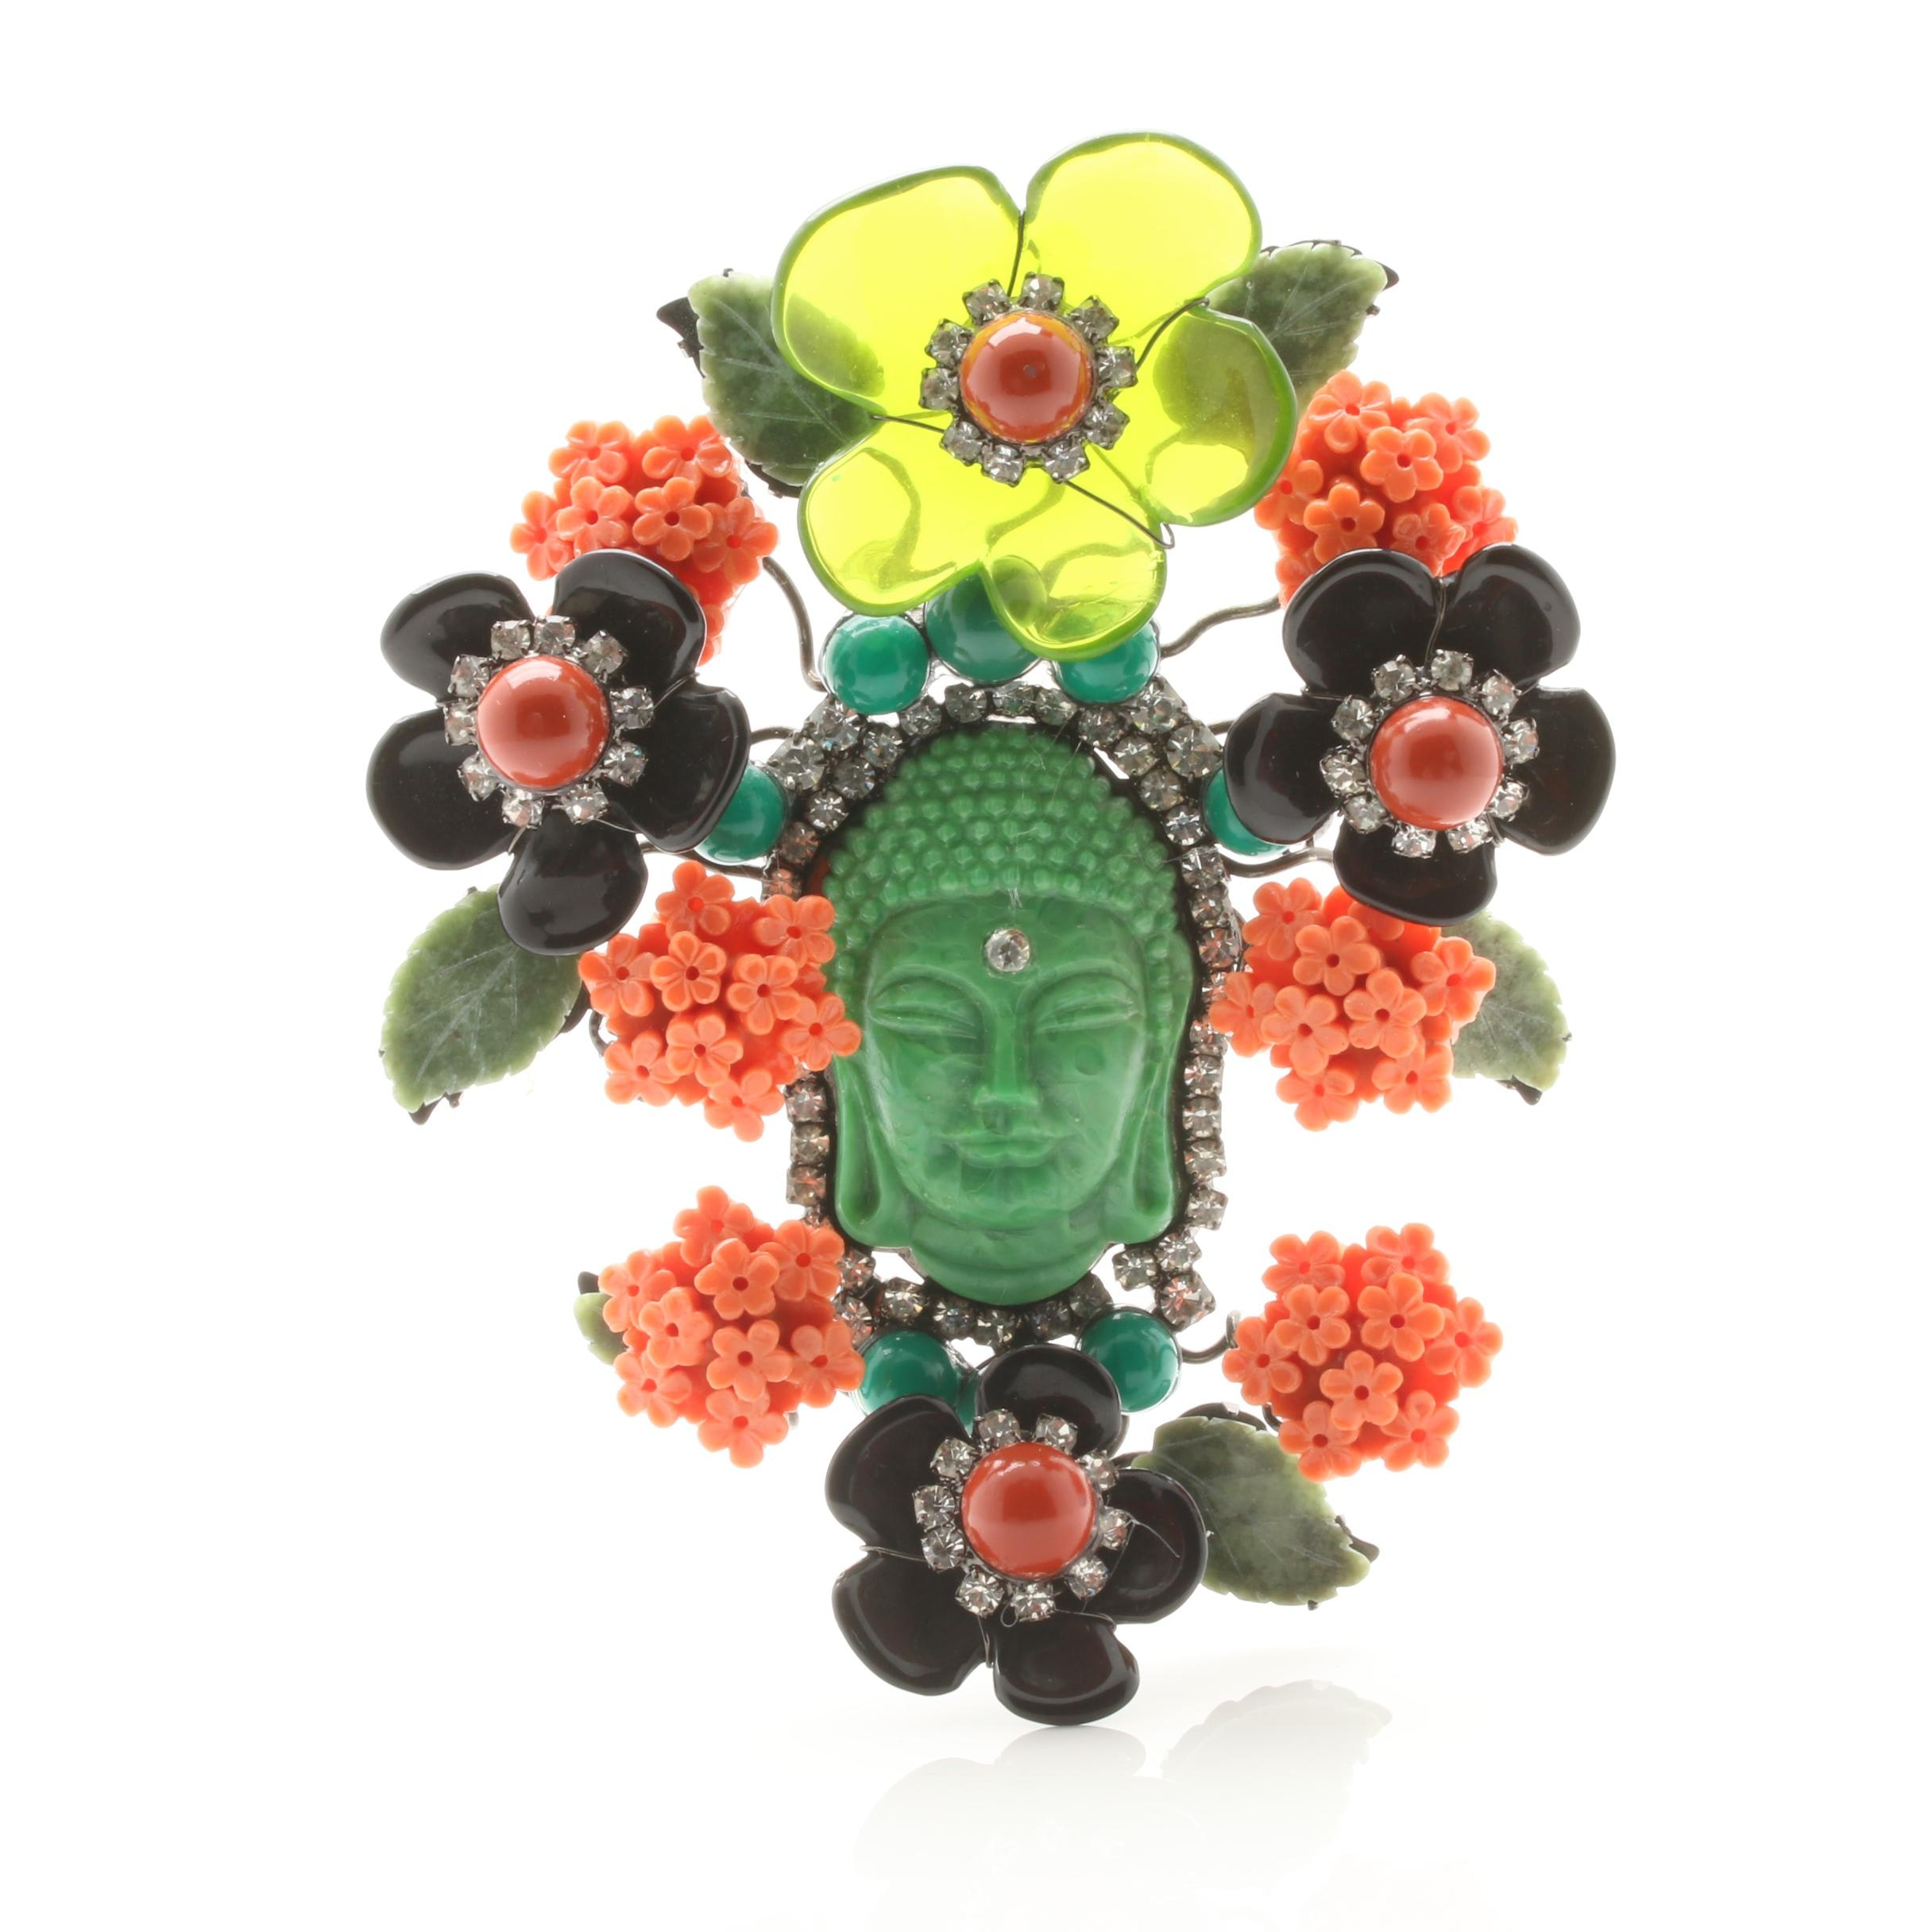 Lawrence Vrba Buddha Brooch Featuring Nephrite and Foilbacks